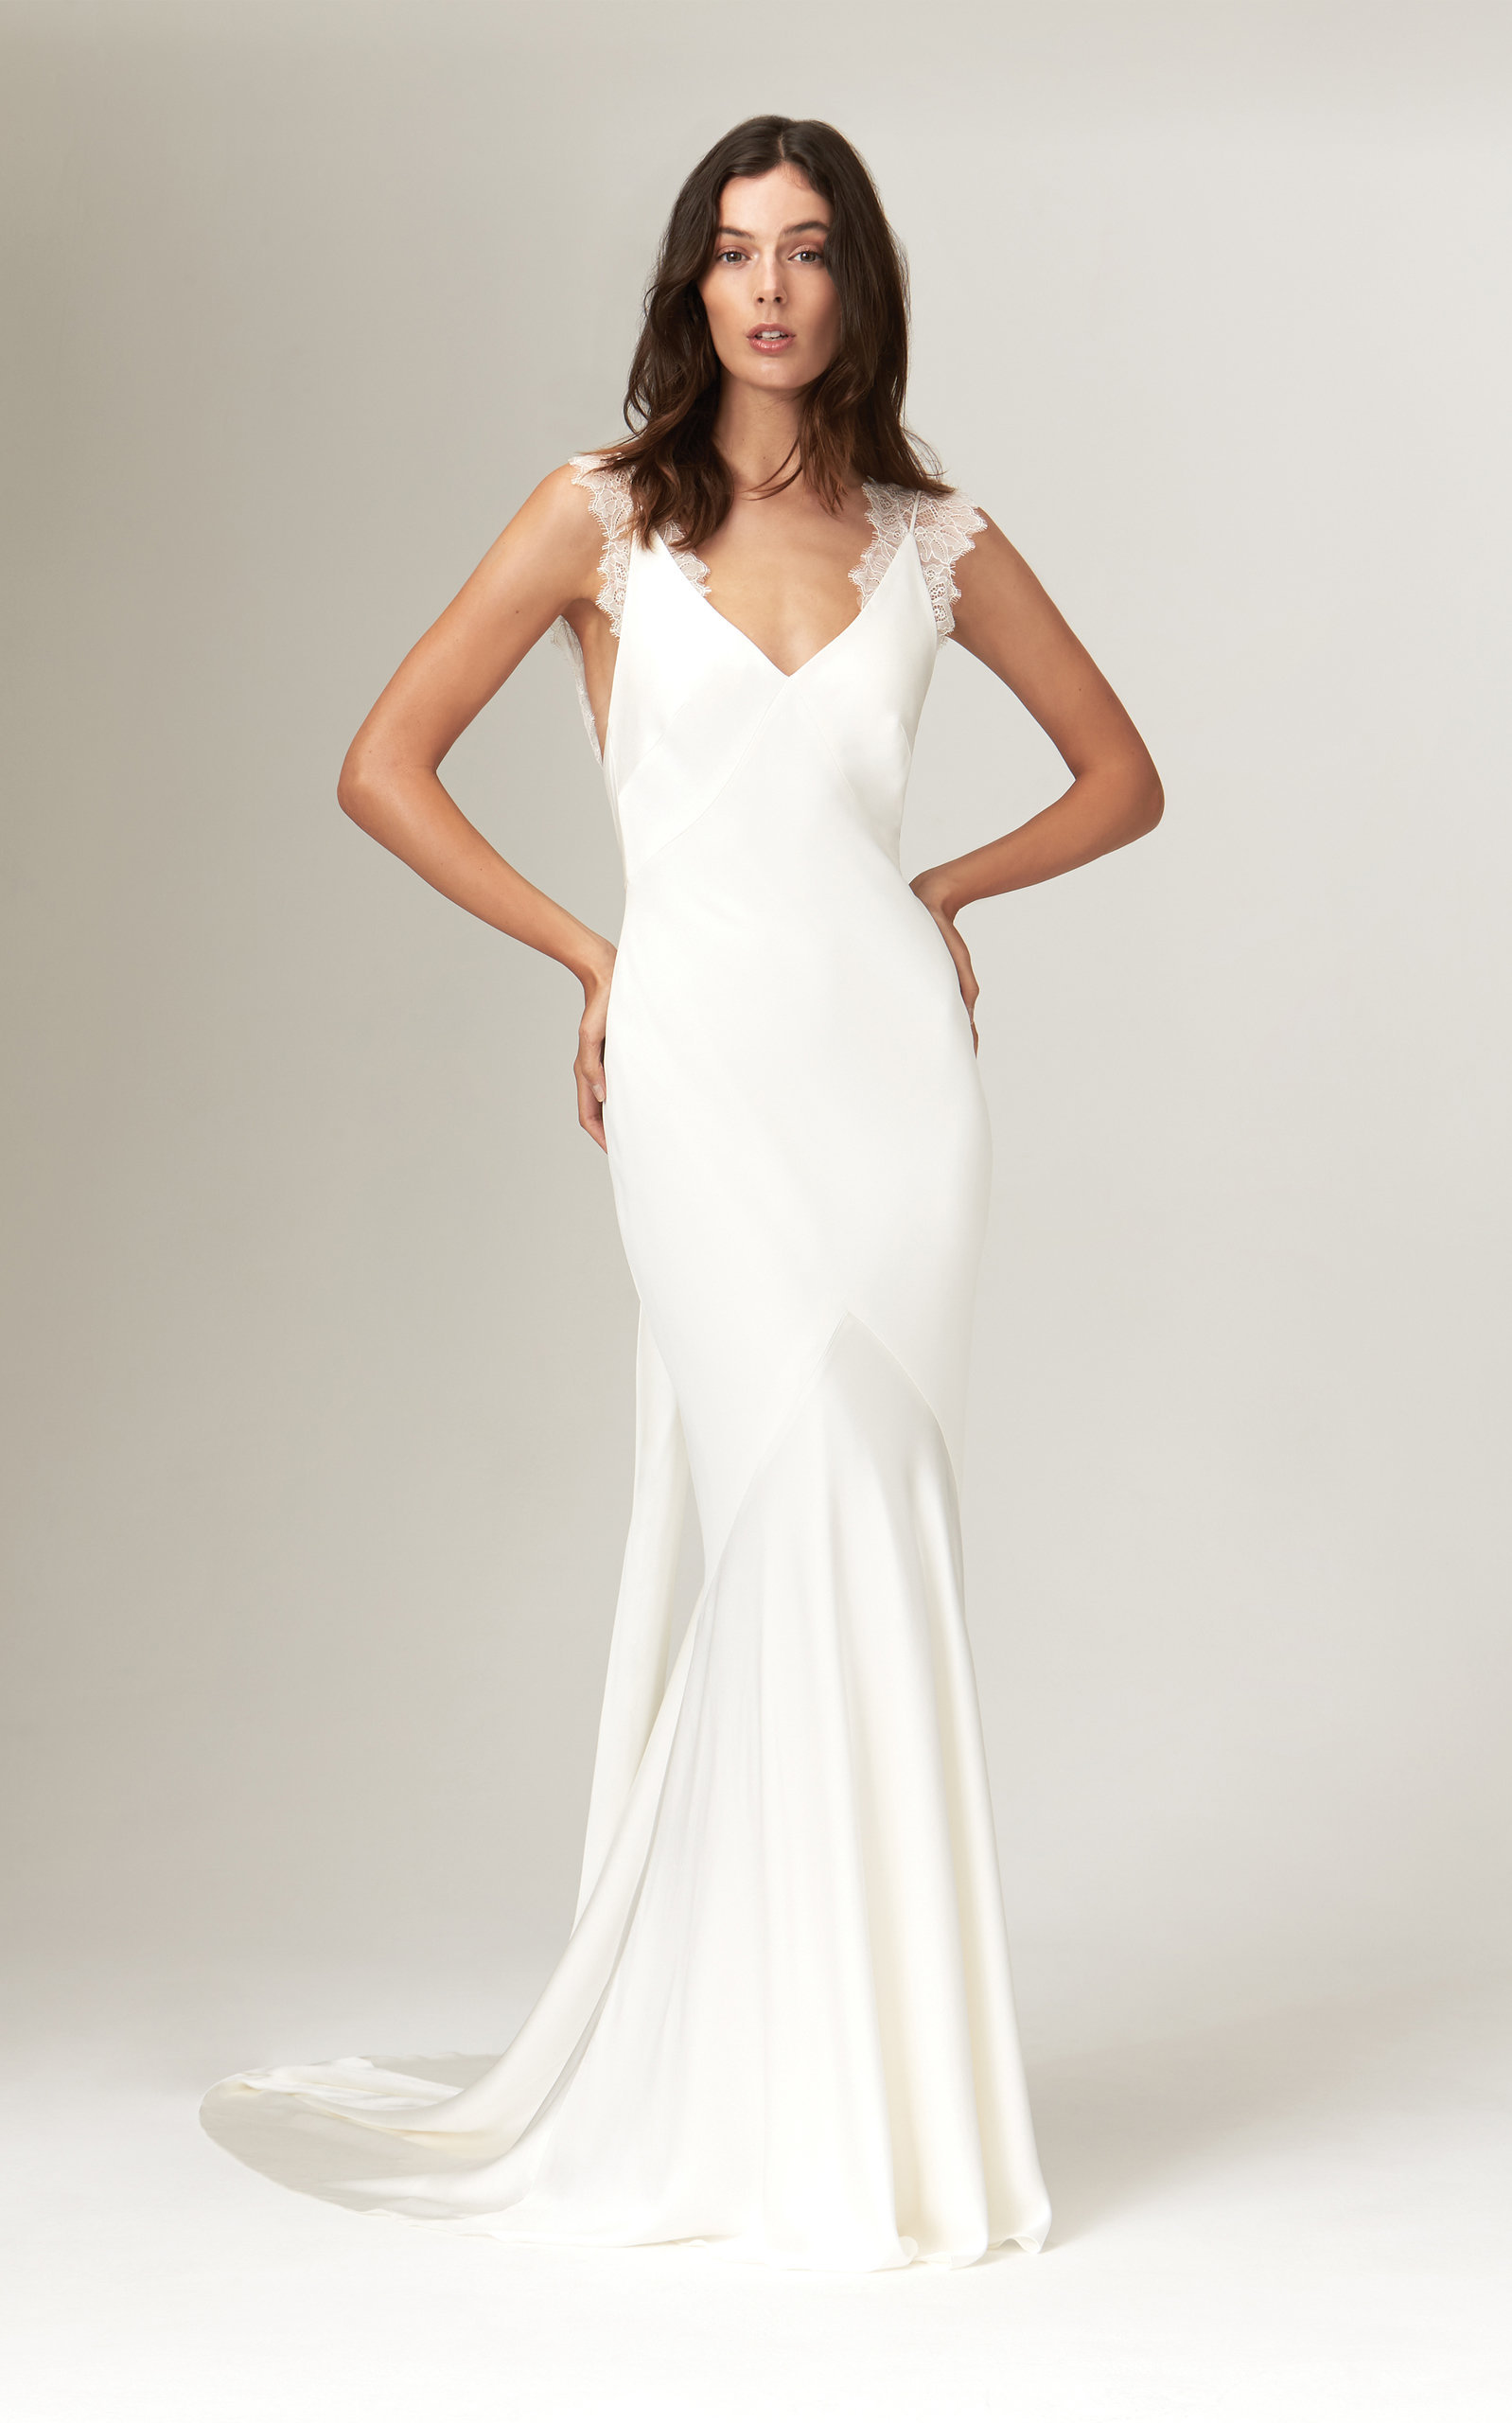 Savannah Miller - Alma Deep V Satin Gown With Chantilly Lace Trim Straps